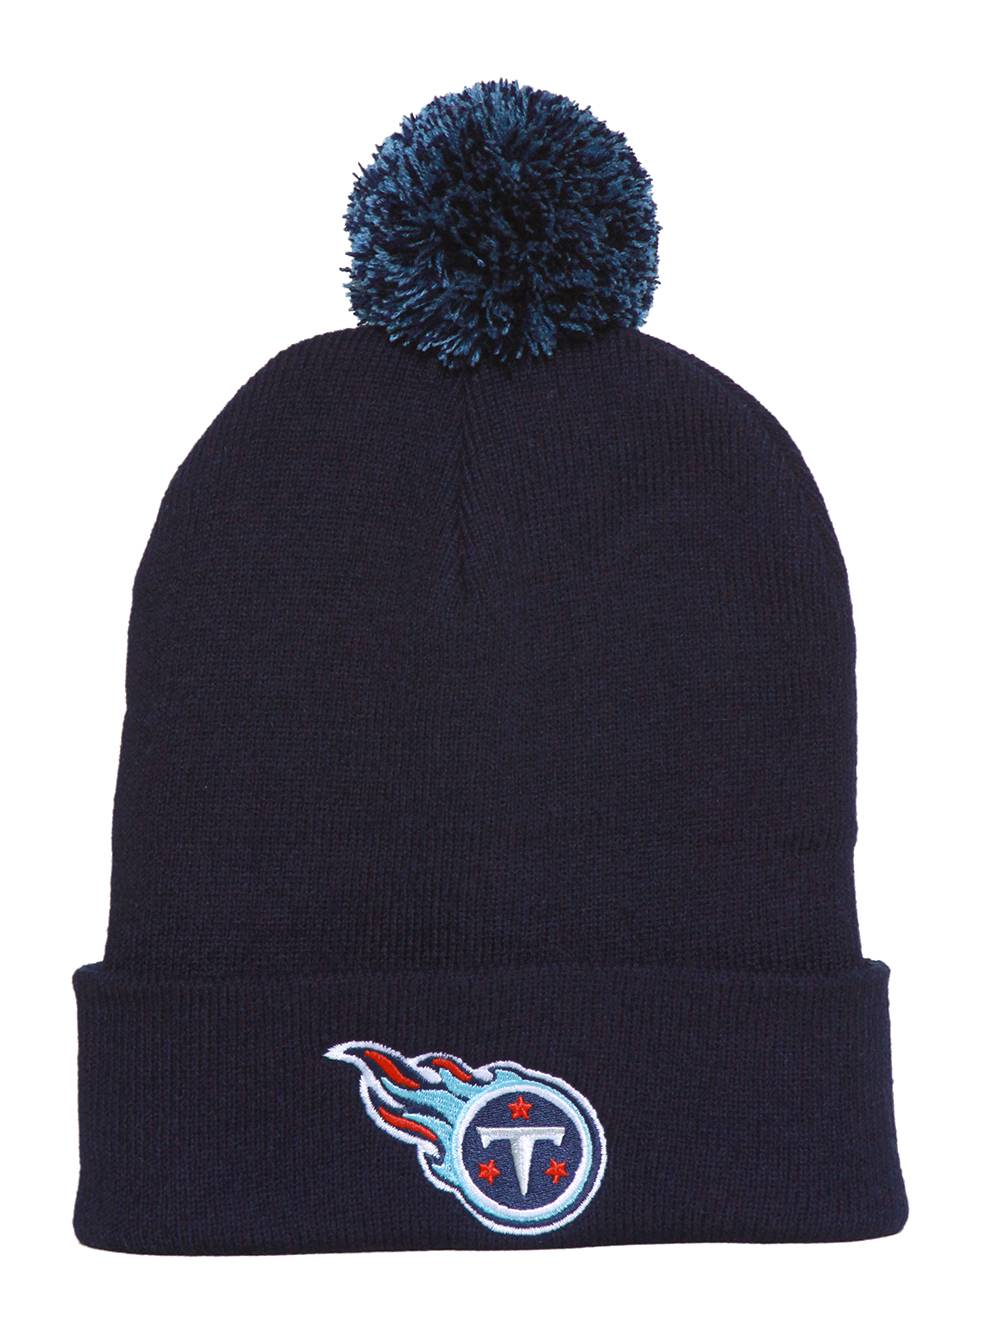 Tennessee Titans Beanie with Pom Navy by Team NFL